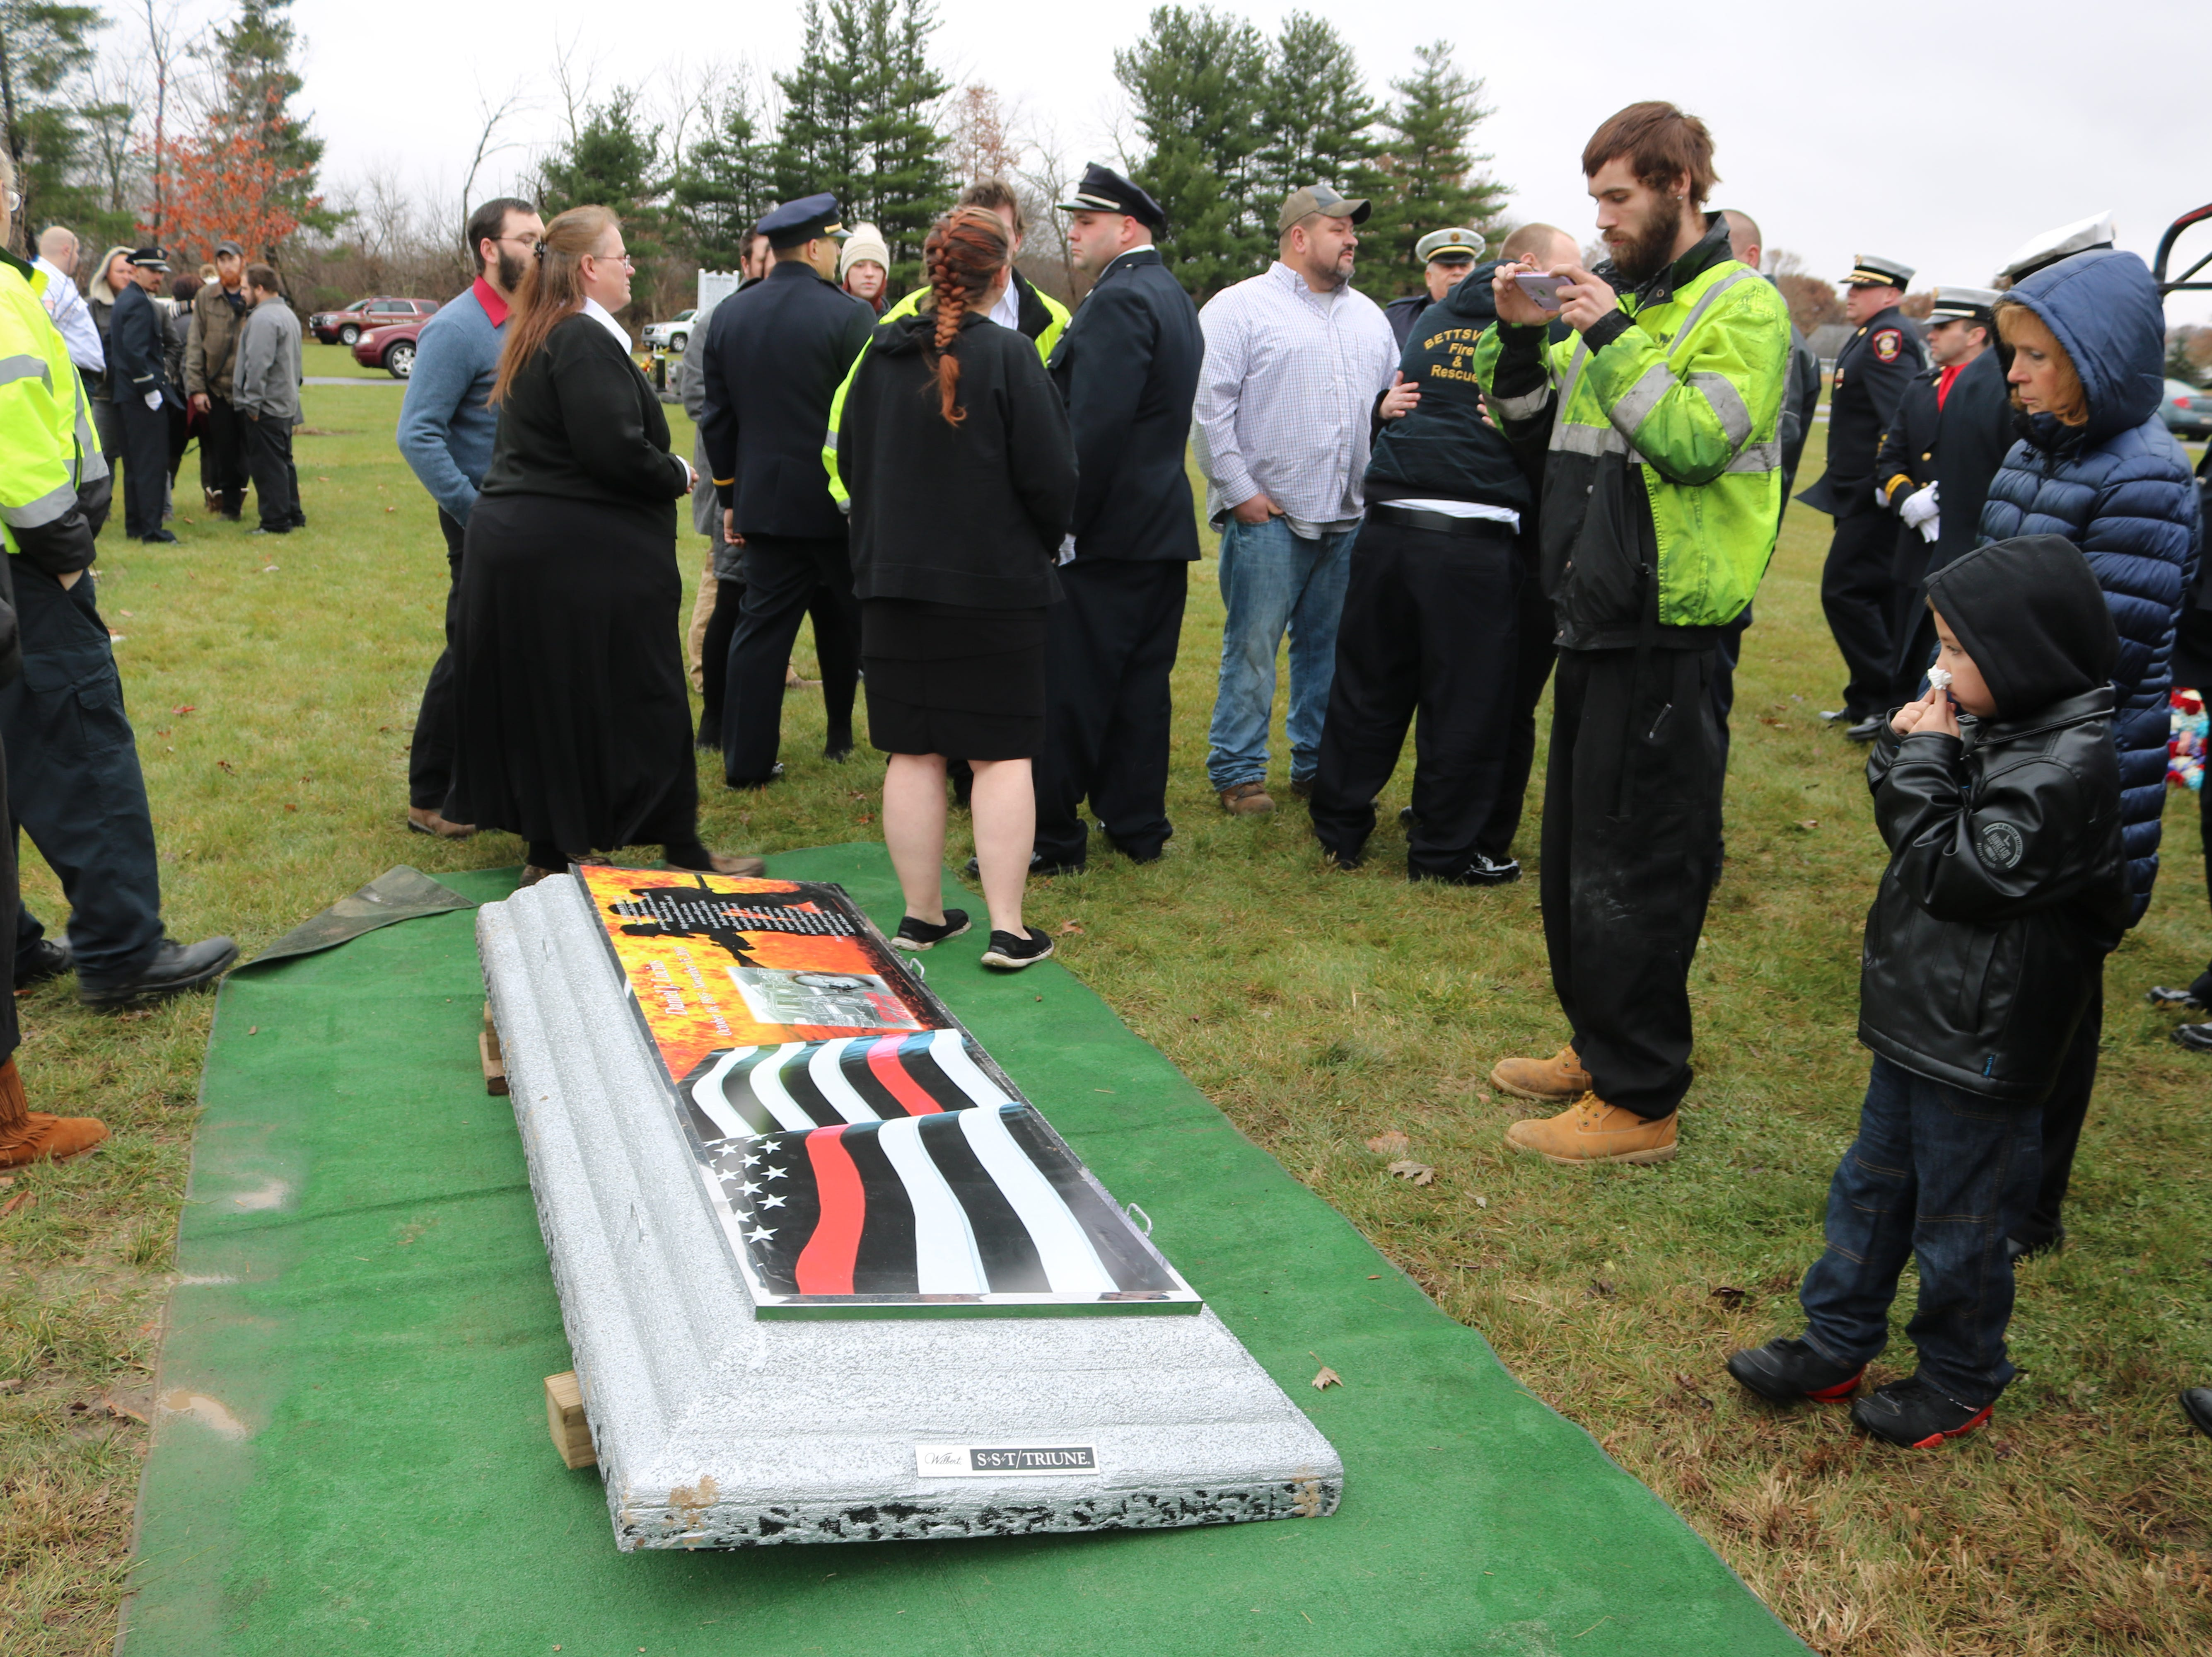 Fellow firefighters and other first responders from throughout Ottawa County and the surrounding area gathered in Oak Harbor on Saturday for the funeral of Carroll Township firefighter Daniel Lucius.